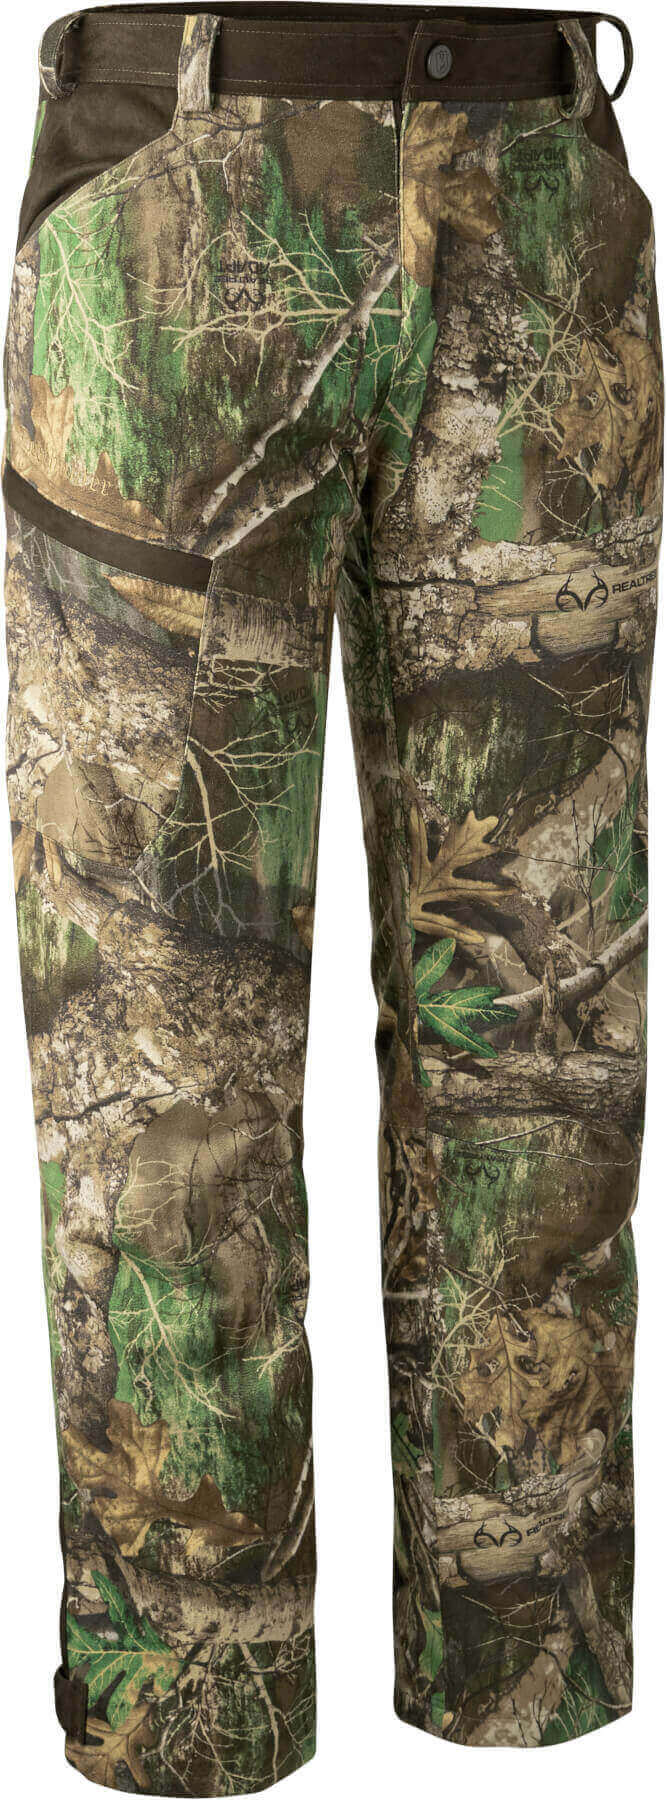 Camouflagehose Explore Realtree Adapt Muster mit Taschen